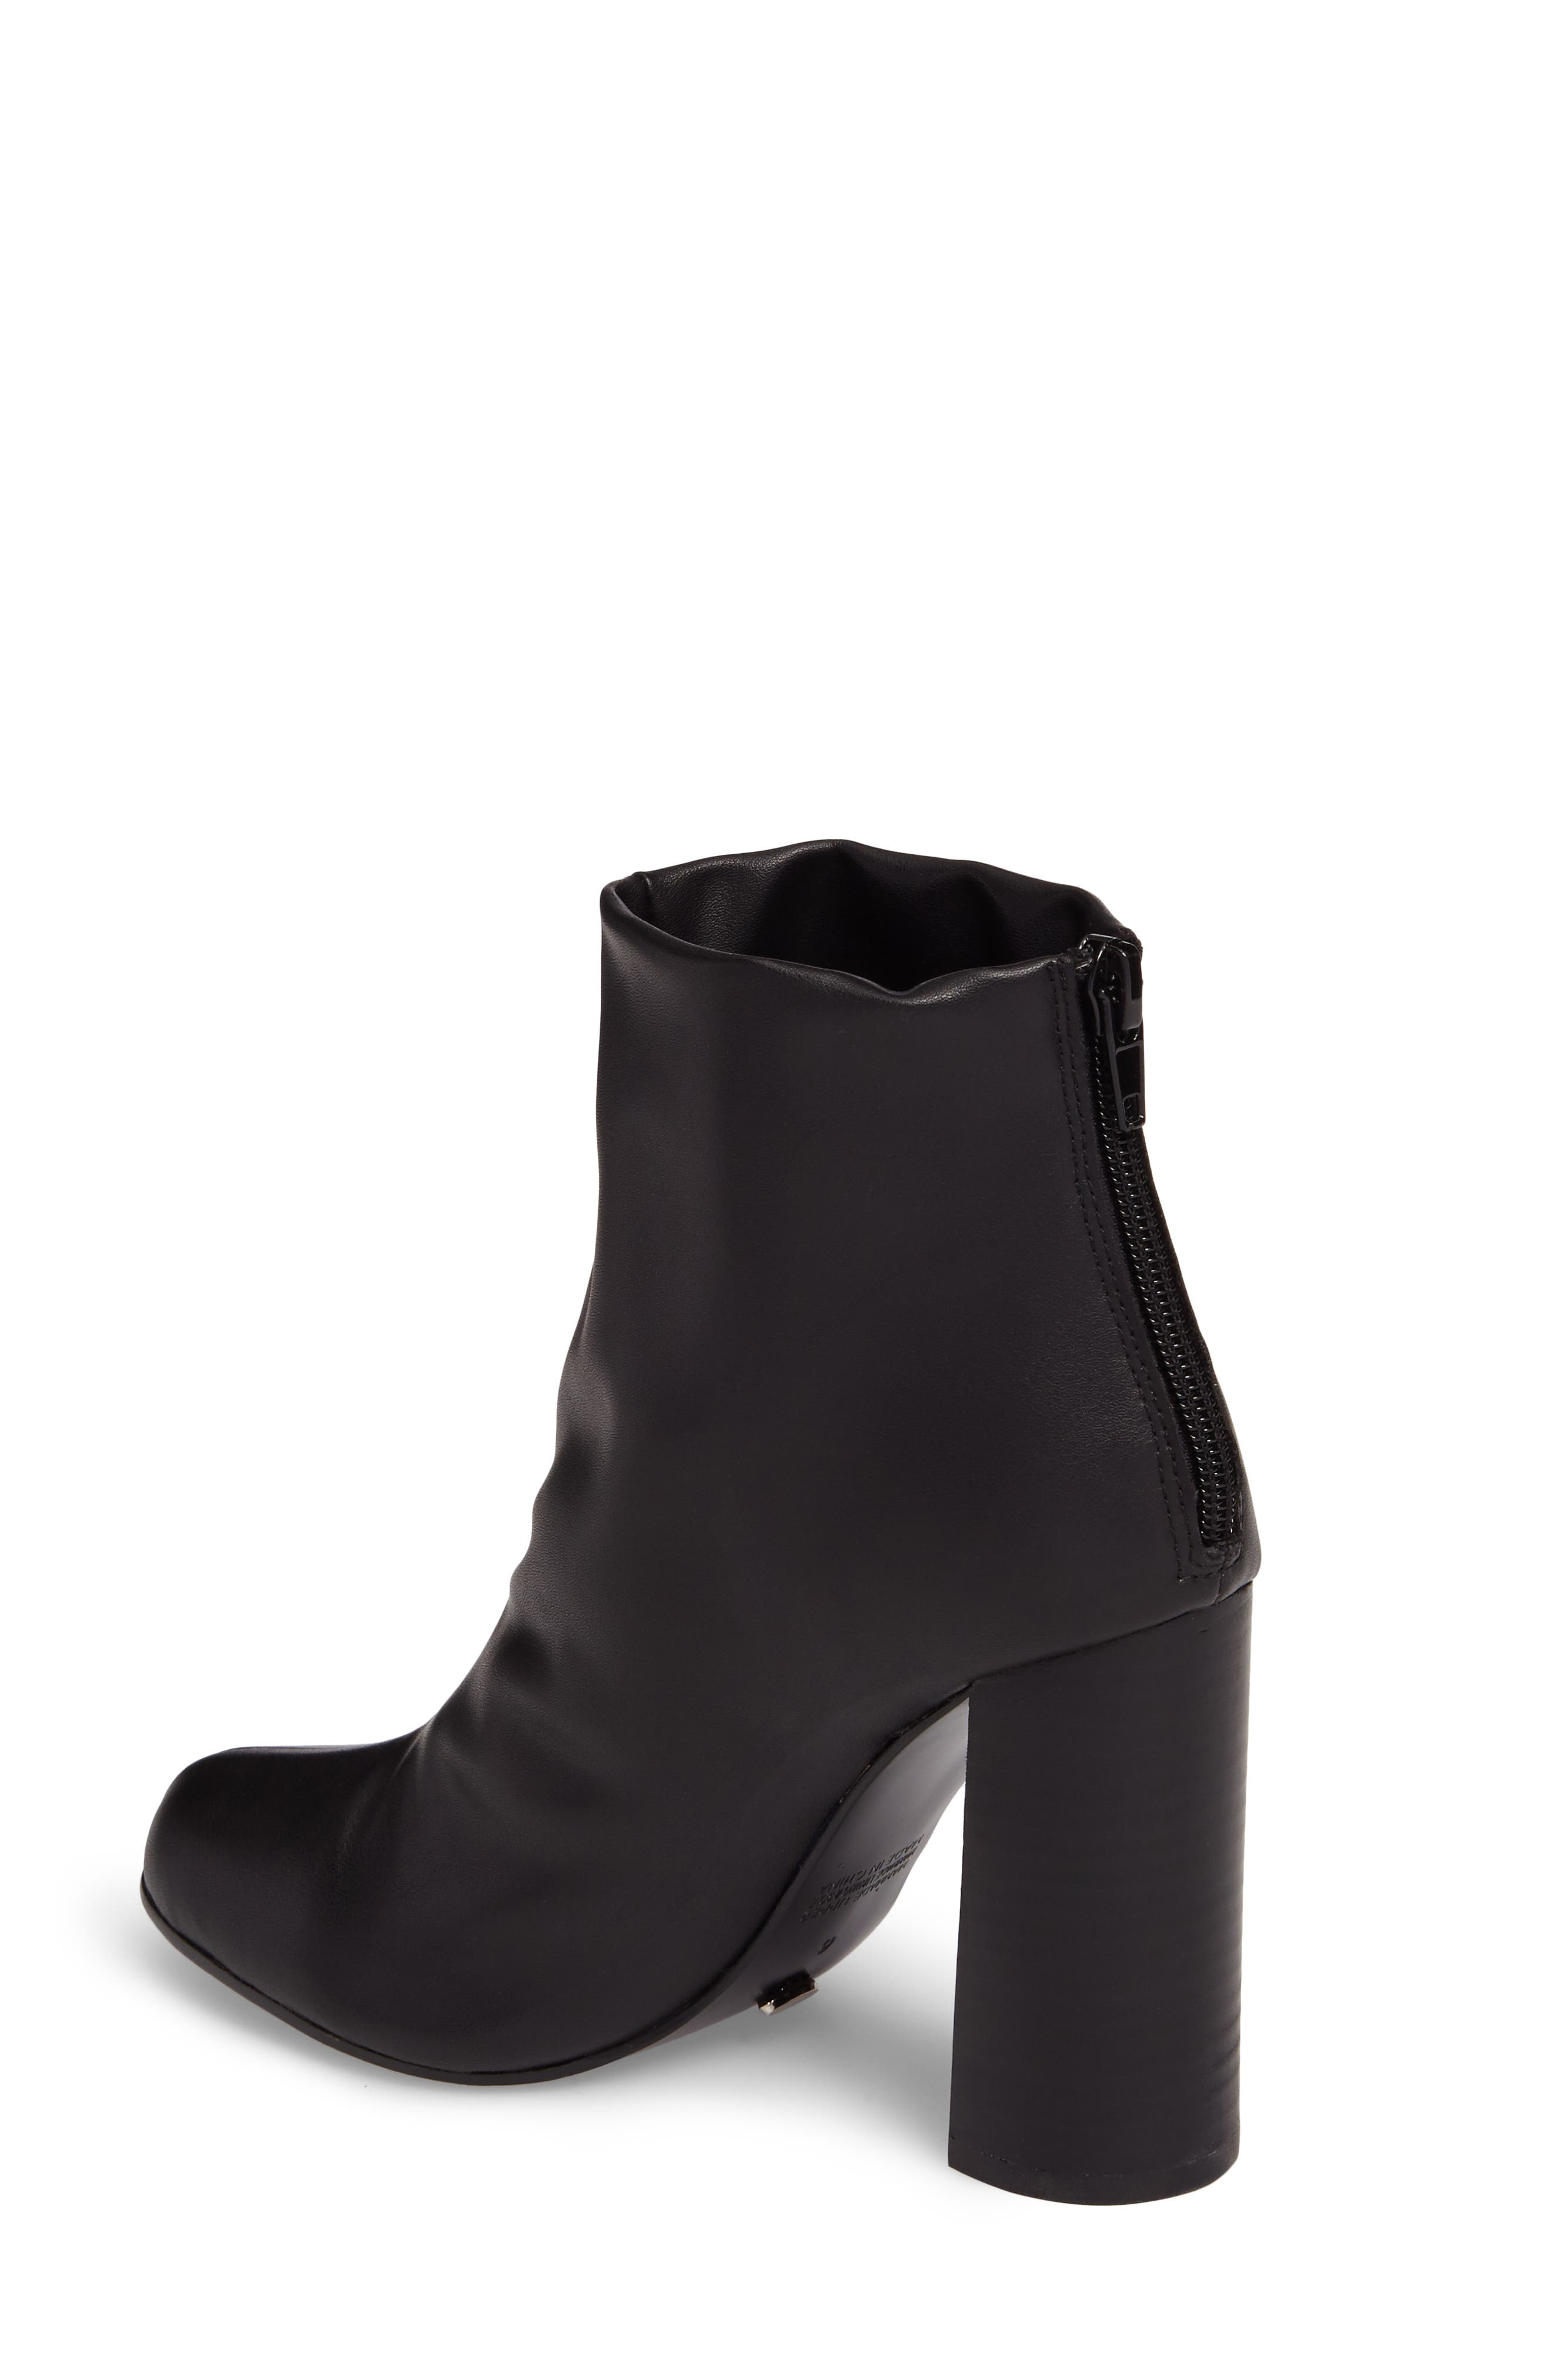 Nyx Stretch Bootie,                             Alternate thumbnail 2, color,                             001